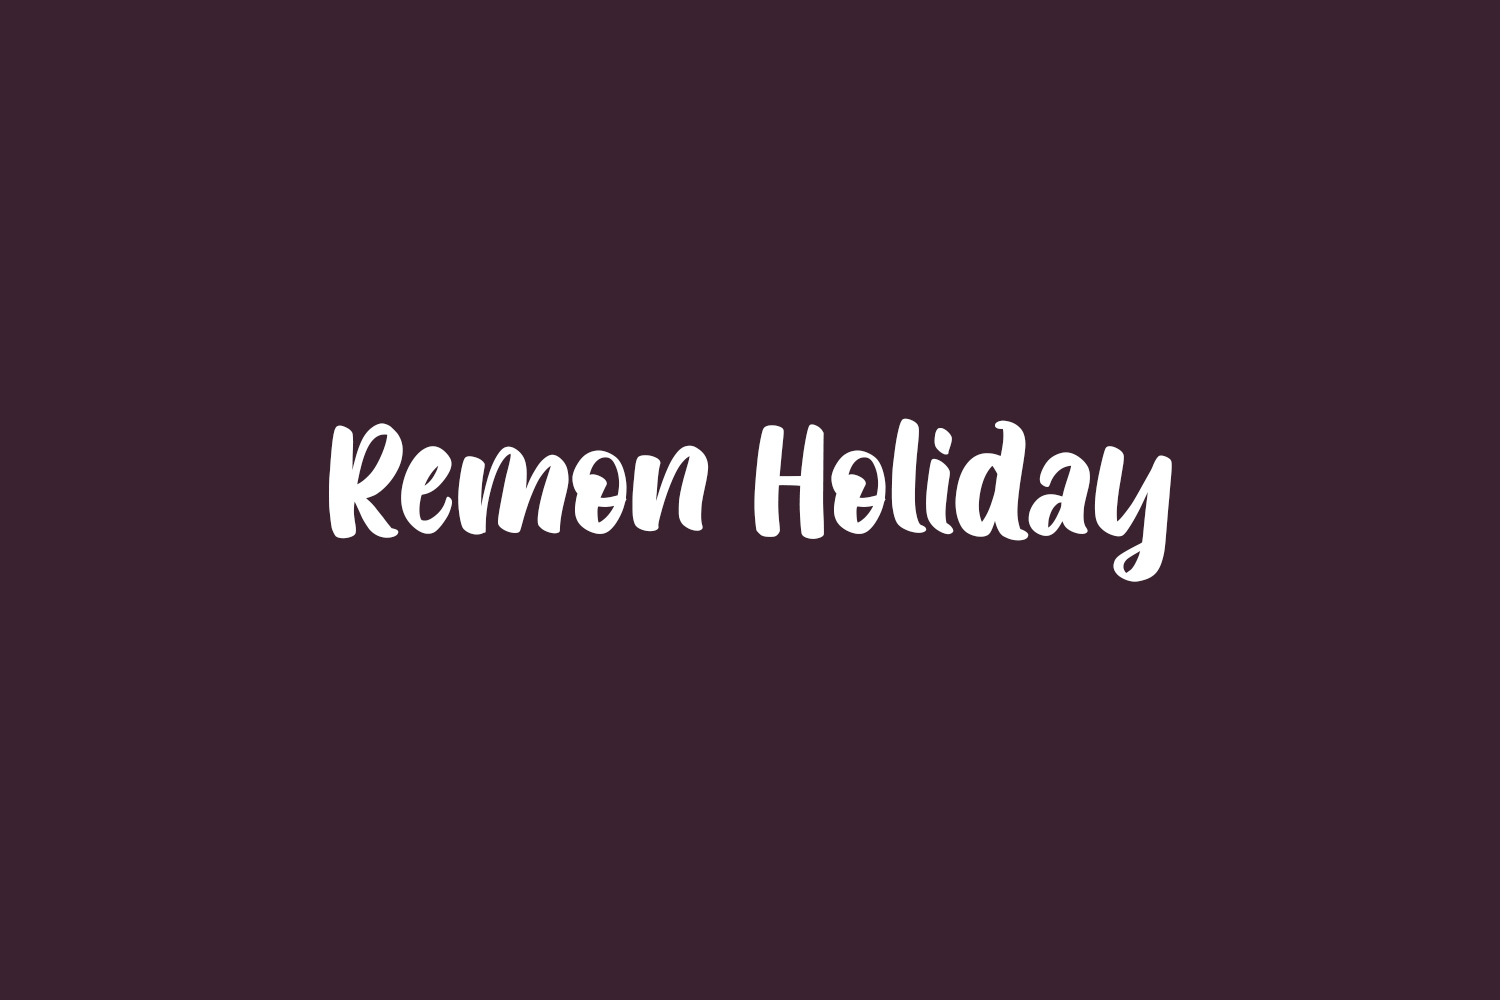 Remon Holiday Free Font